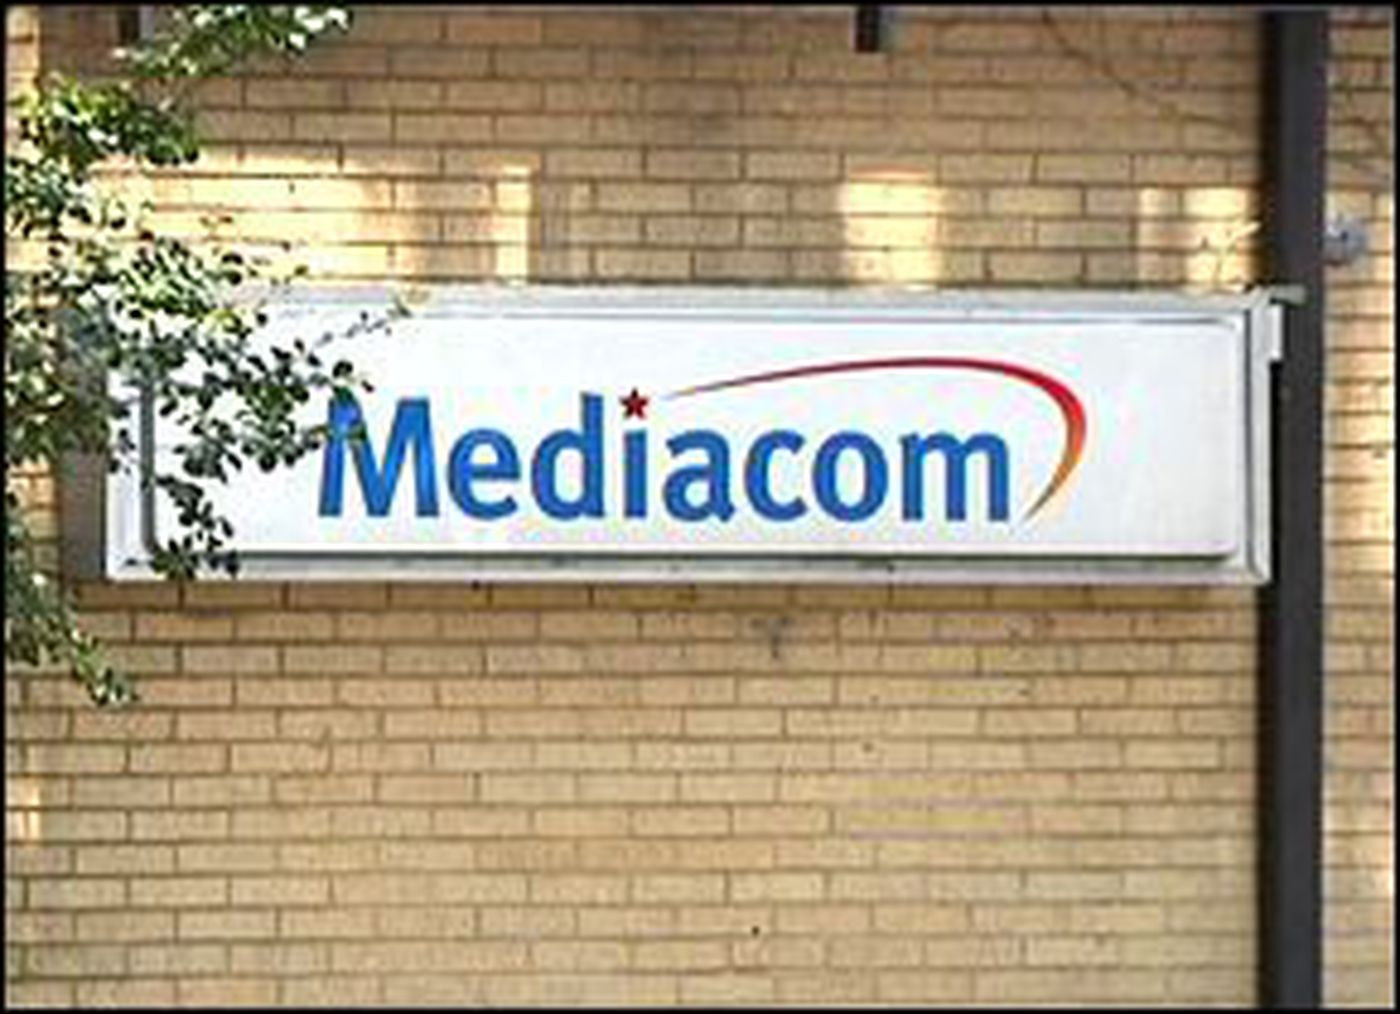 Mediacom is raising rates again